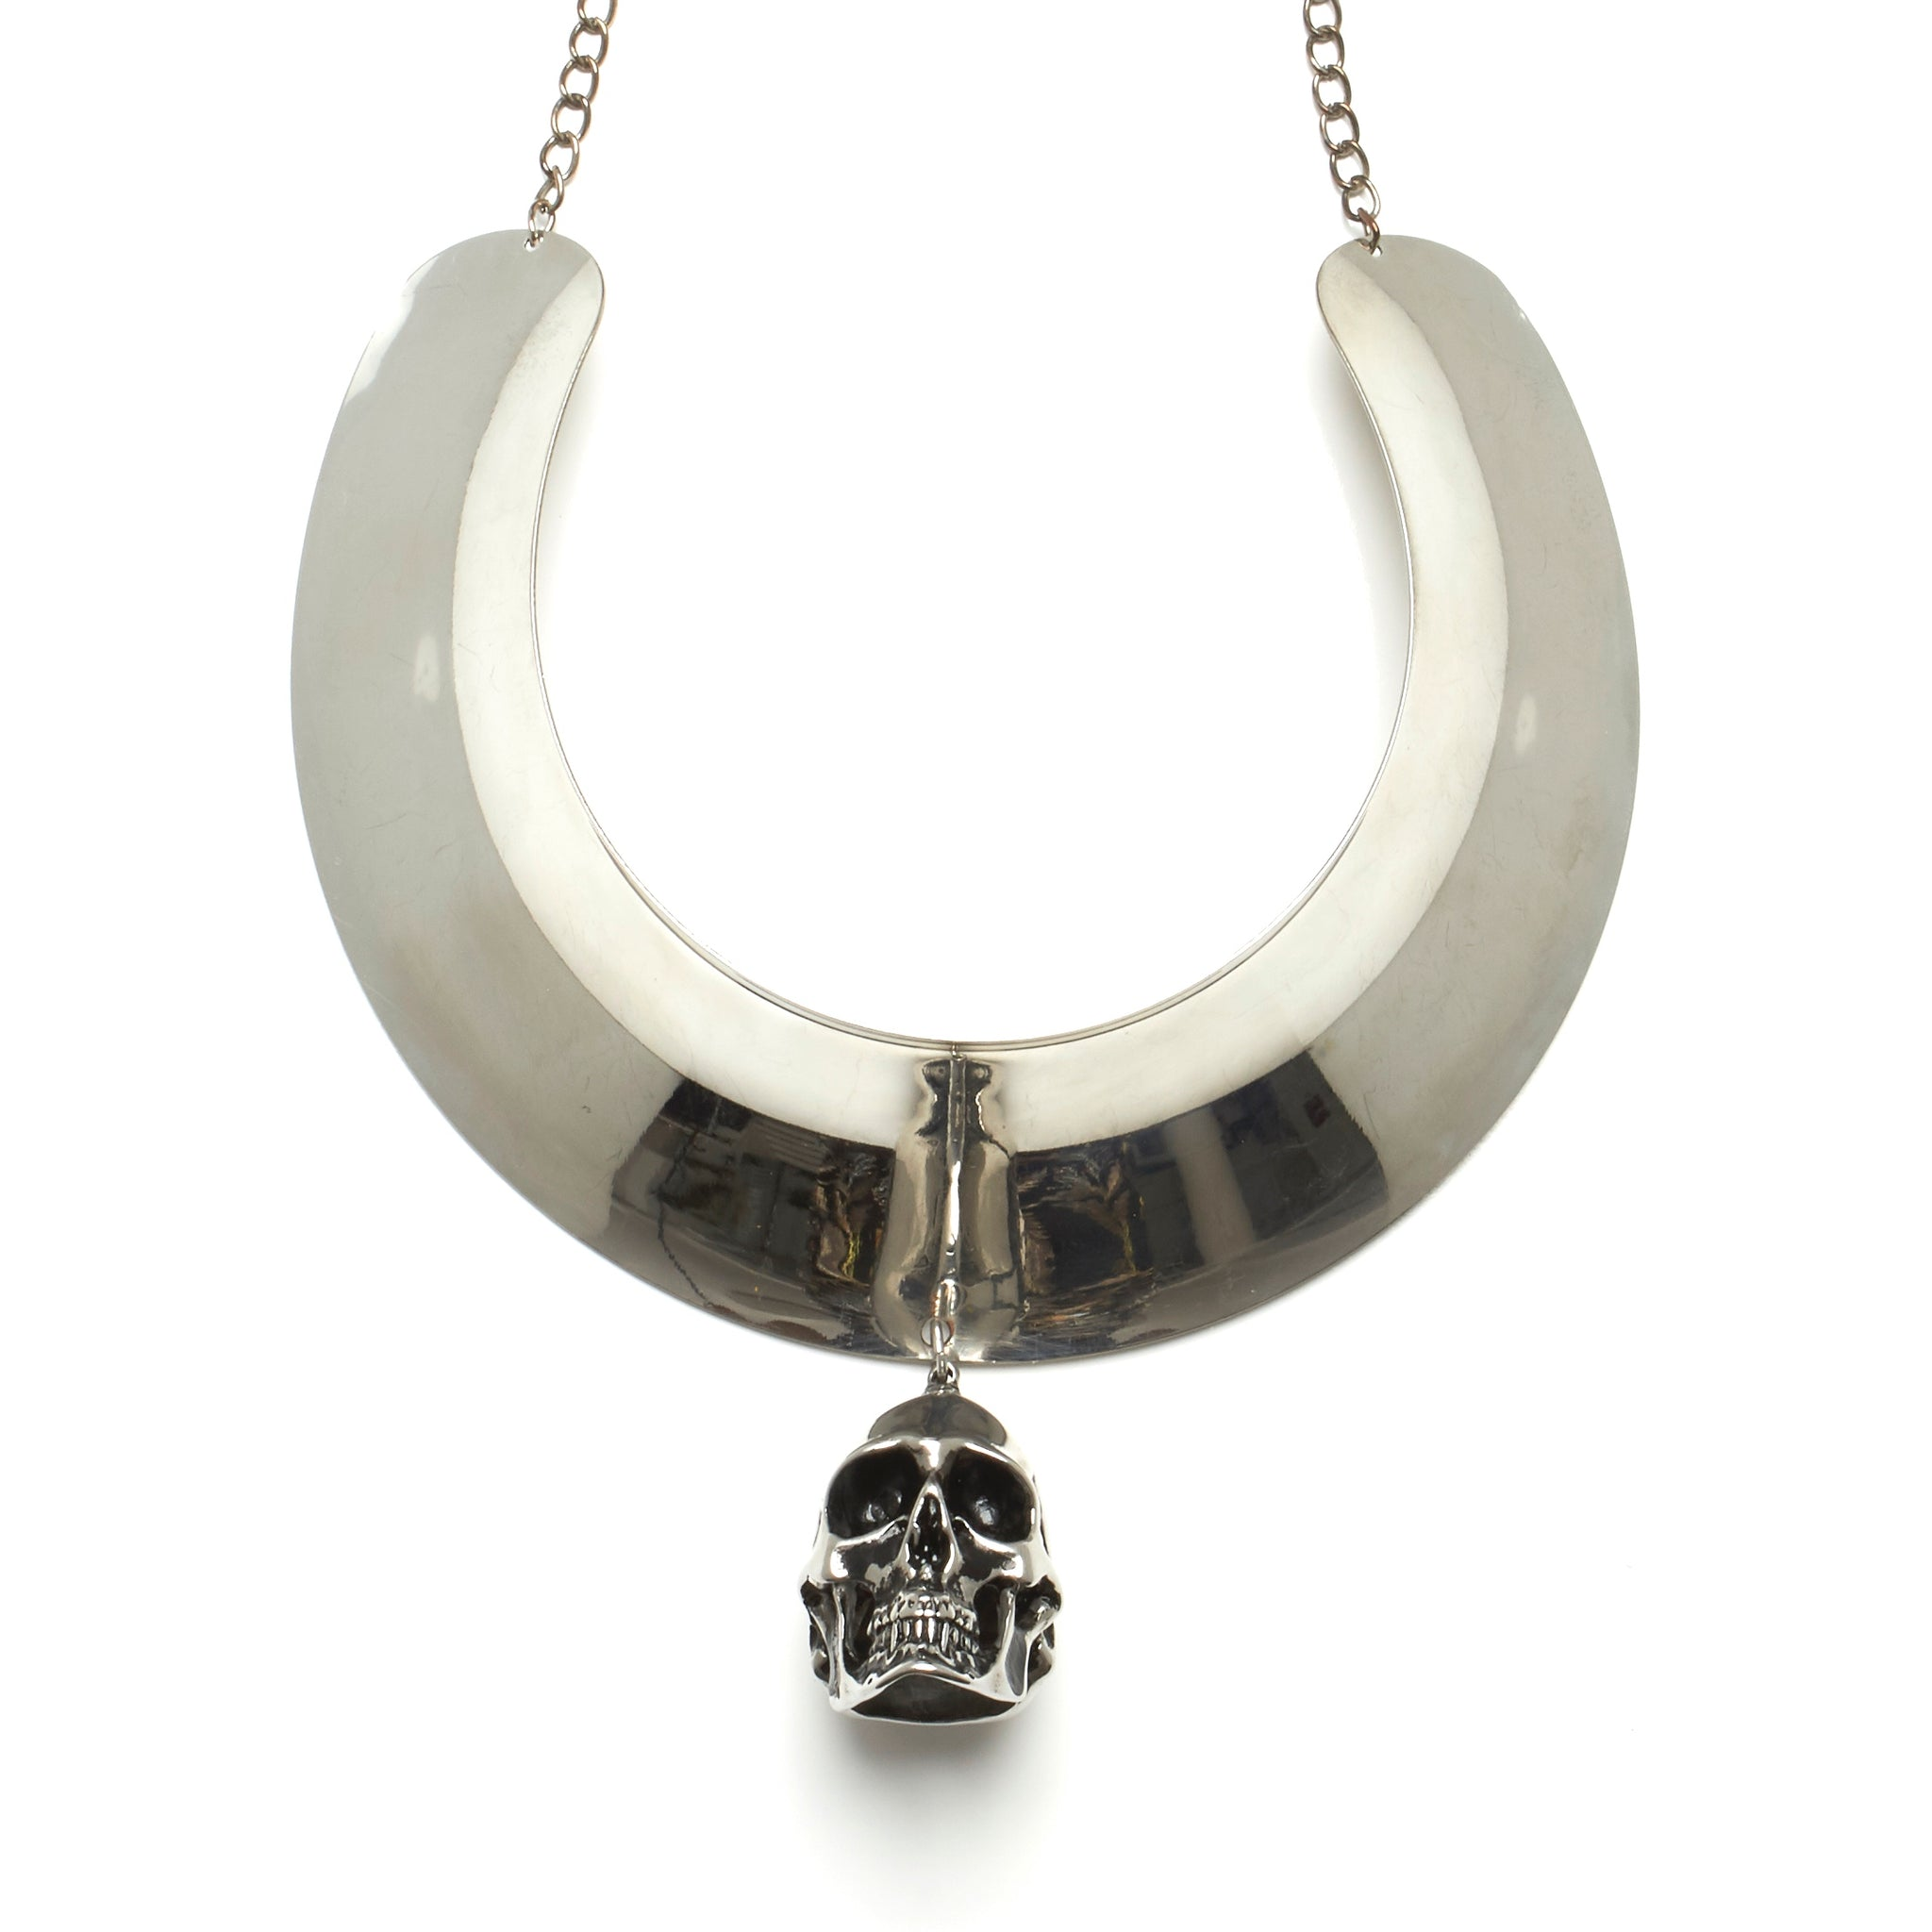 THICK TORQUE NECKLACE WITH LARGE STAINLESS STEEL SKULL PENDENT. BY NYET JEWELRY.